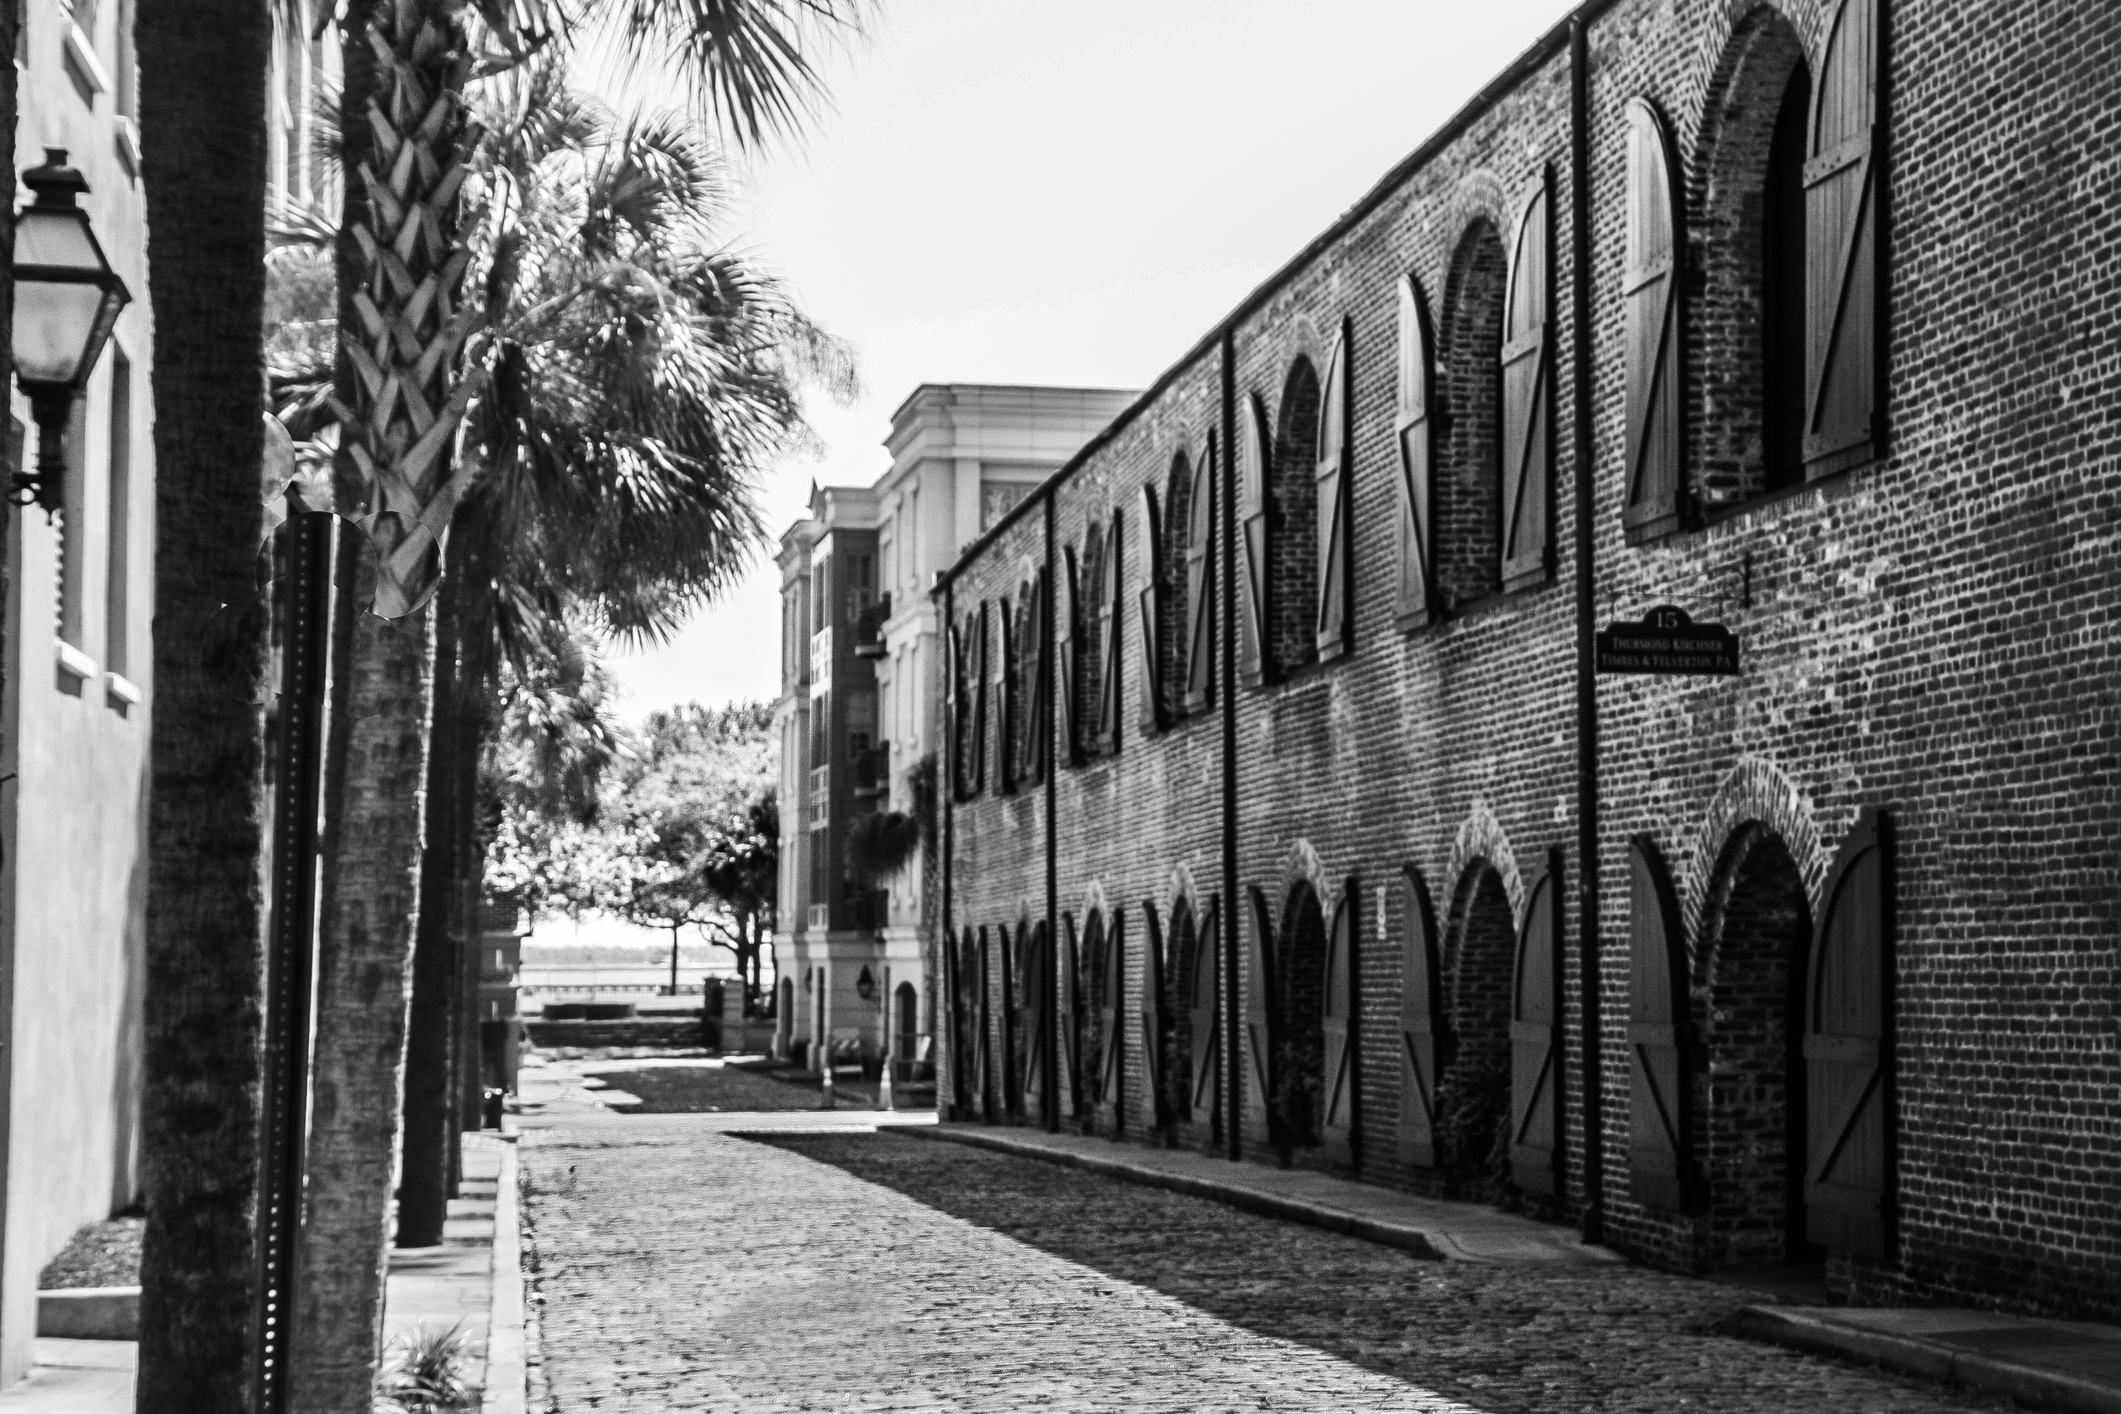 The side streets in Charleston are charming in black and white NotSoSAHM